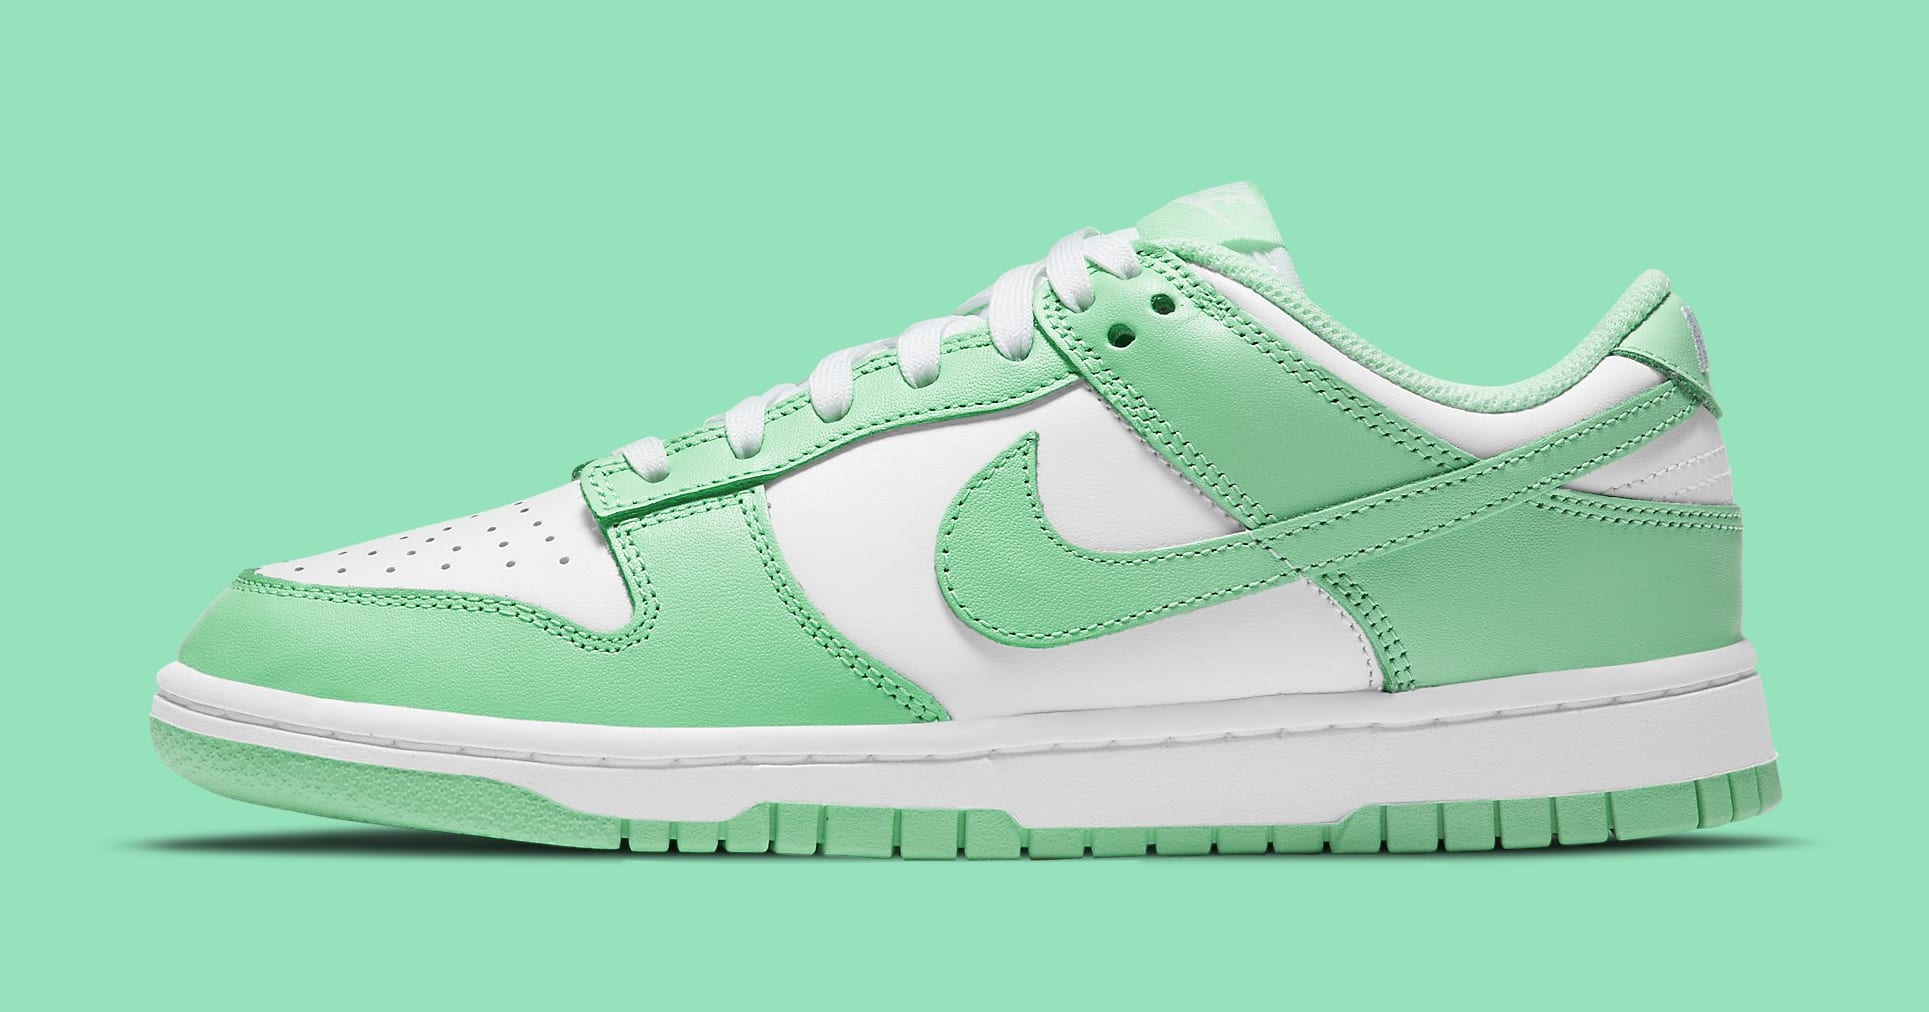 Nike Dunk Low Women's 'Green Glow' DD1503-105 Lateral